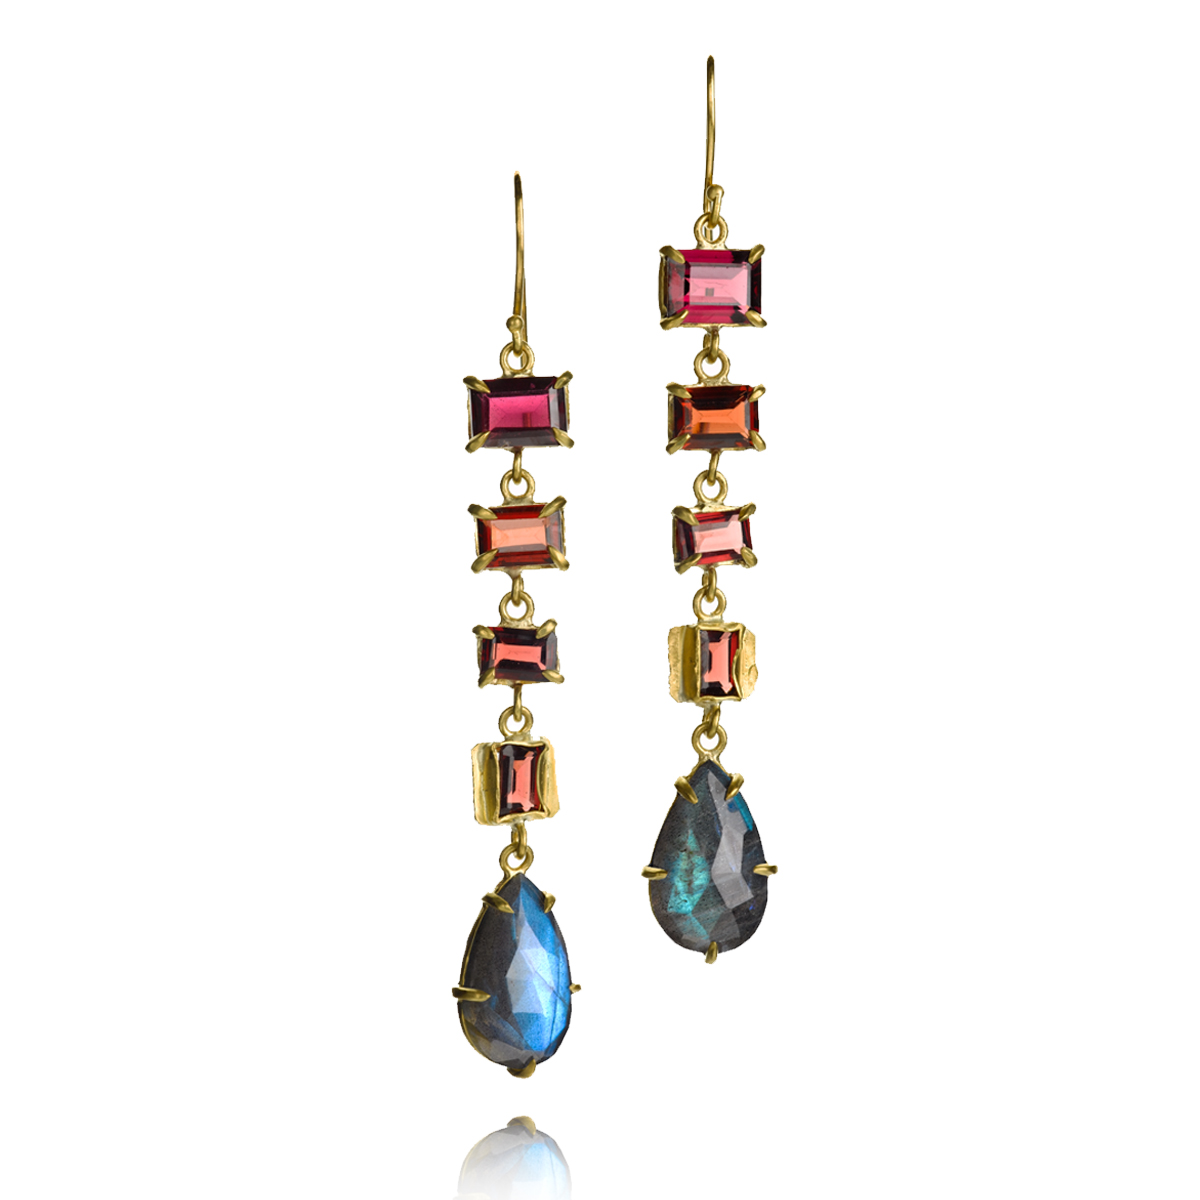 Color for days. We love these 22k earrings with rhodolite garnet and labradorite,$4,620.